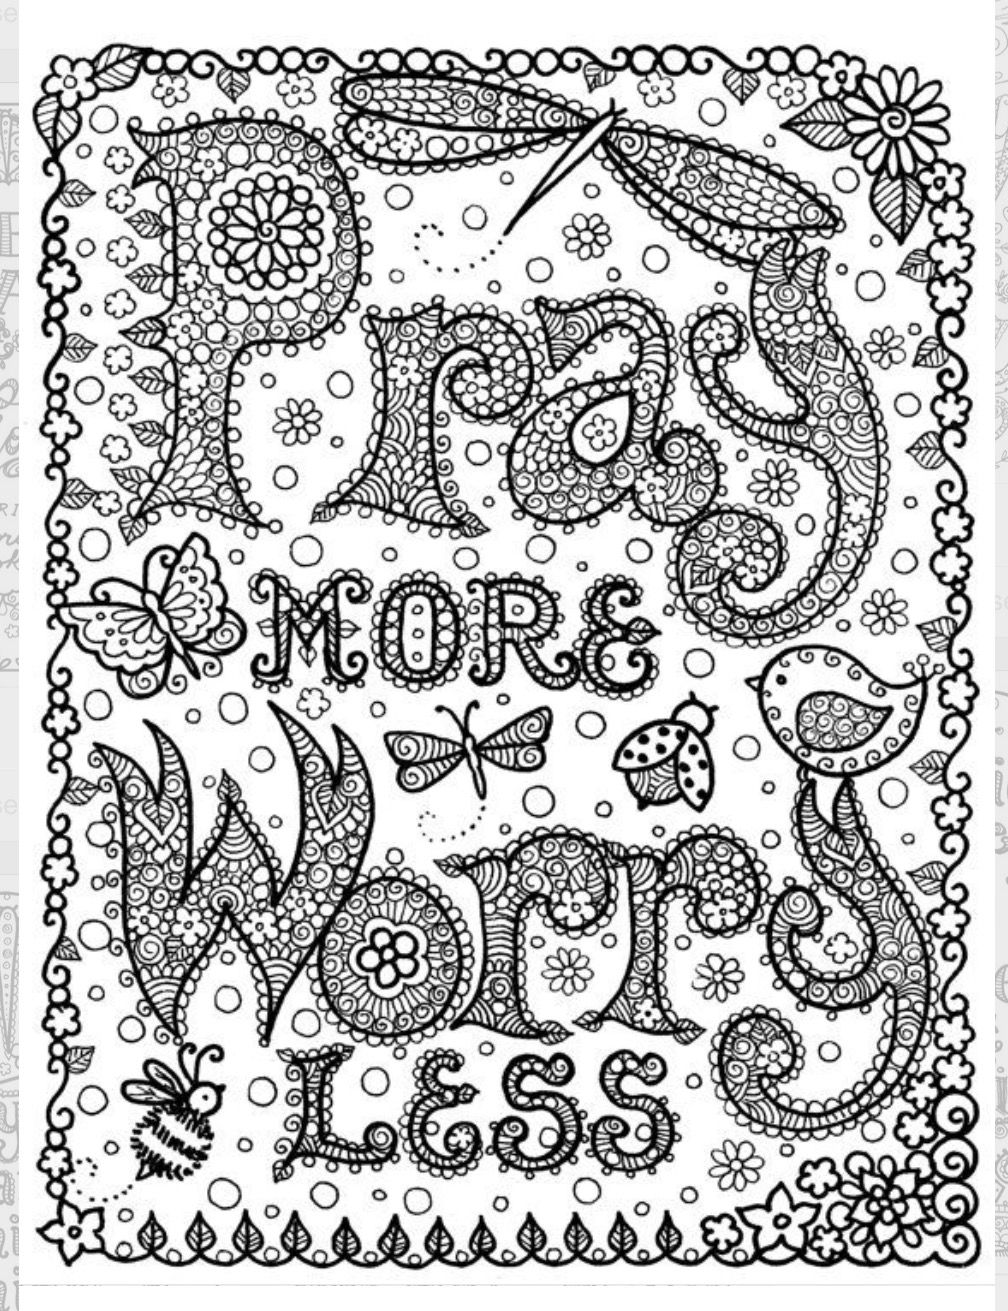 Pin By Sharon Martino On Saying Bible Coloring Pages Coloring